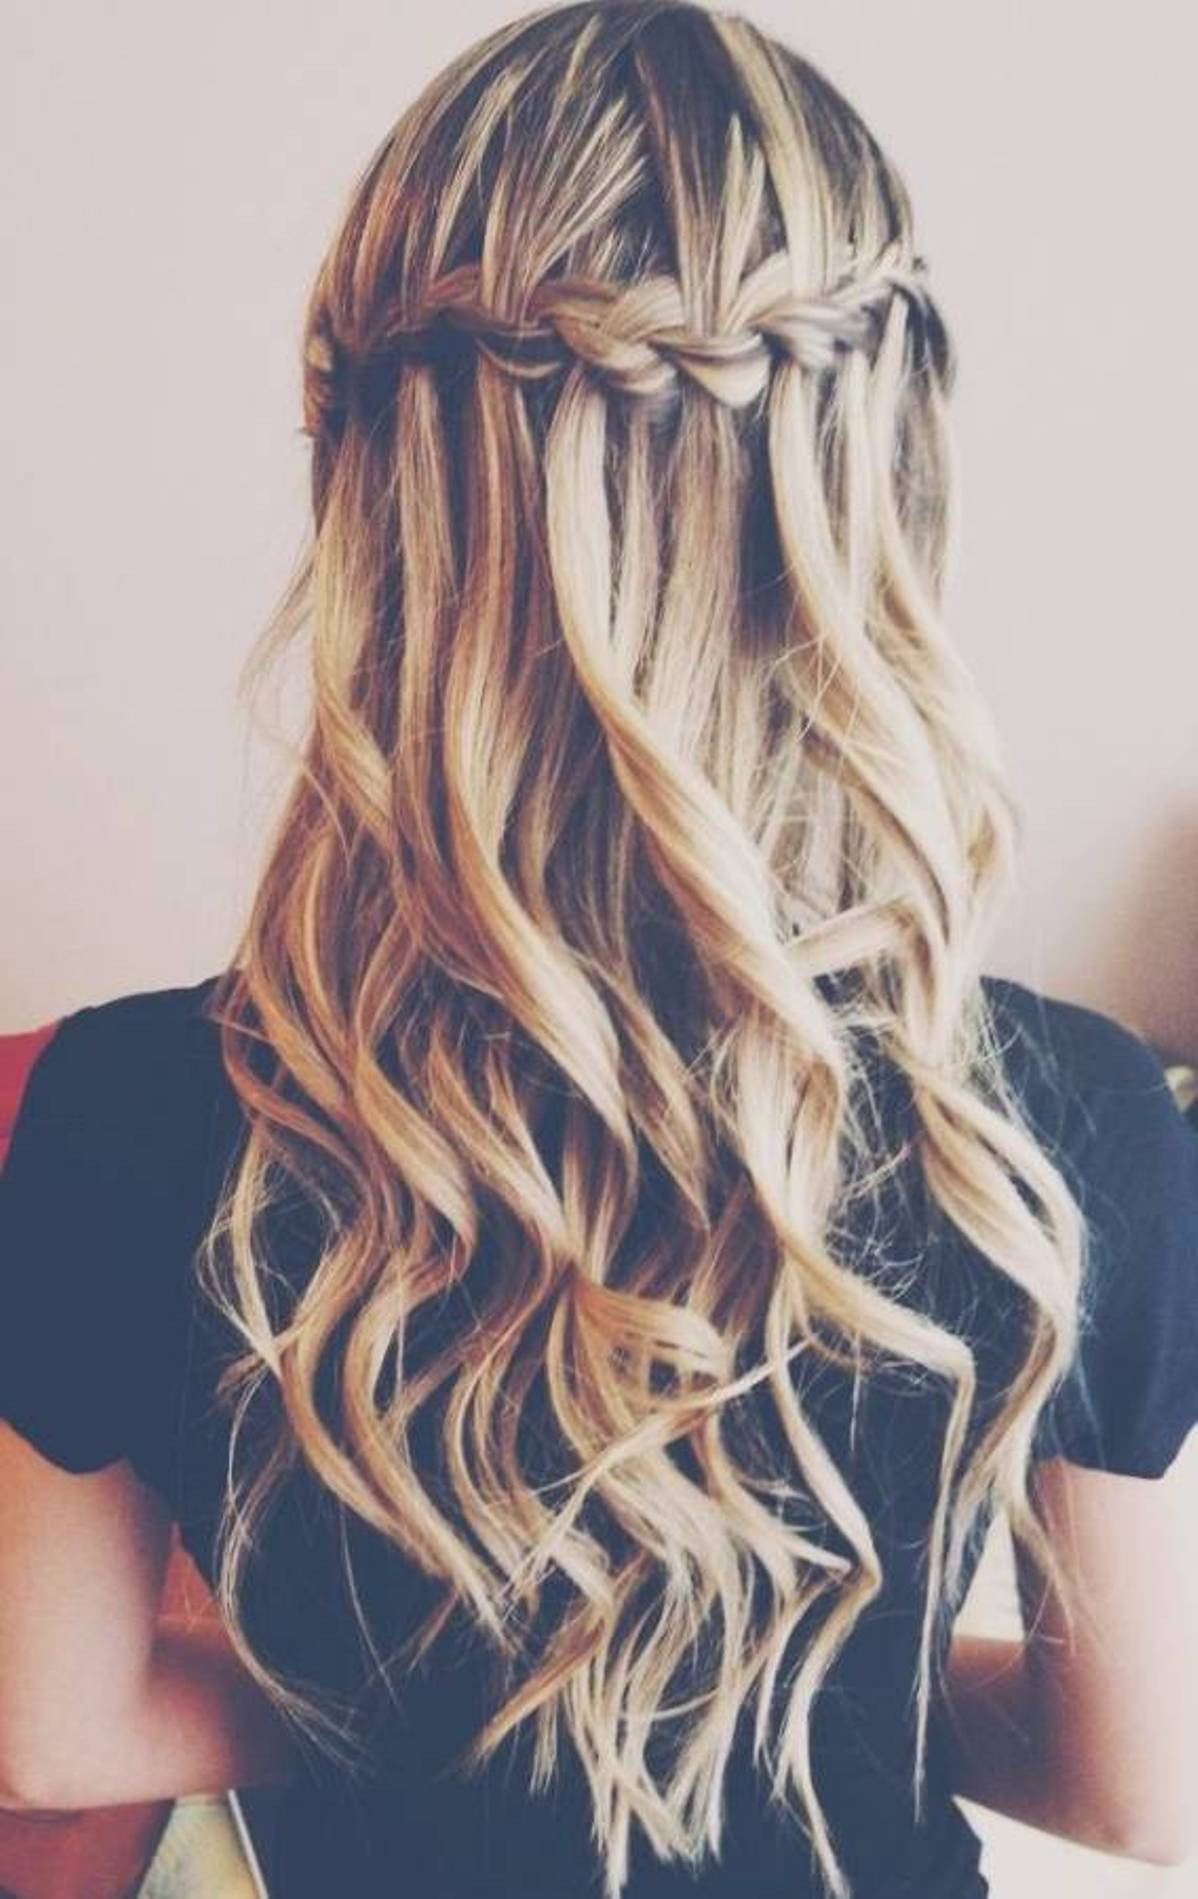 Best ideas about Cute Hairstyles . Save or Pin Magnificently Cute Hairstyles For Chic Women Ohh My My Now.